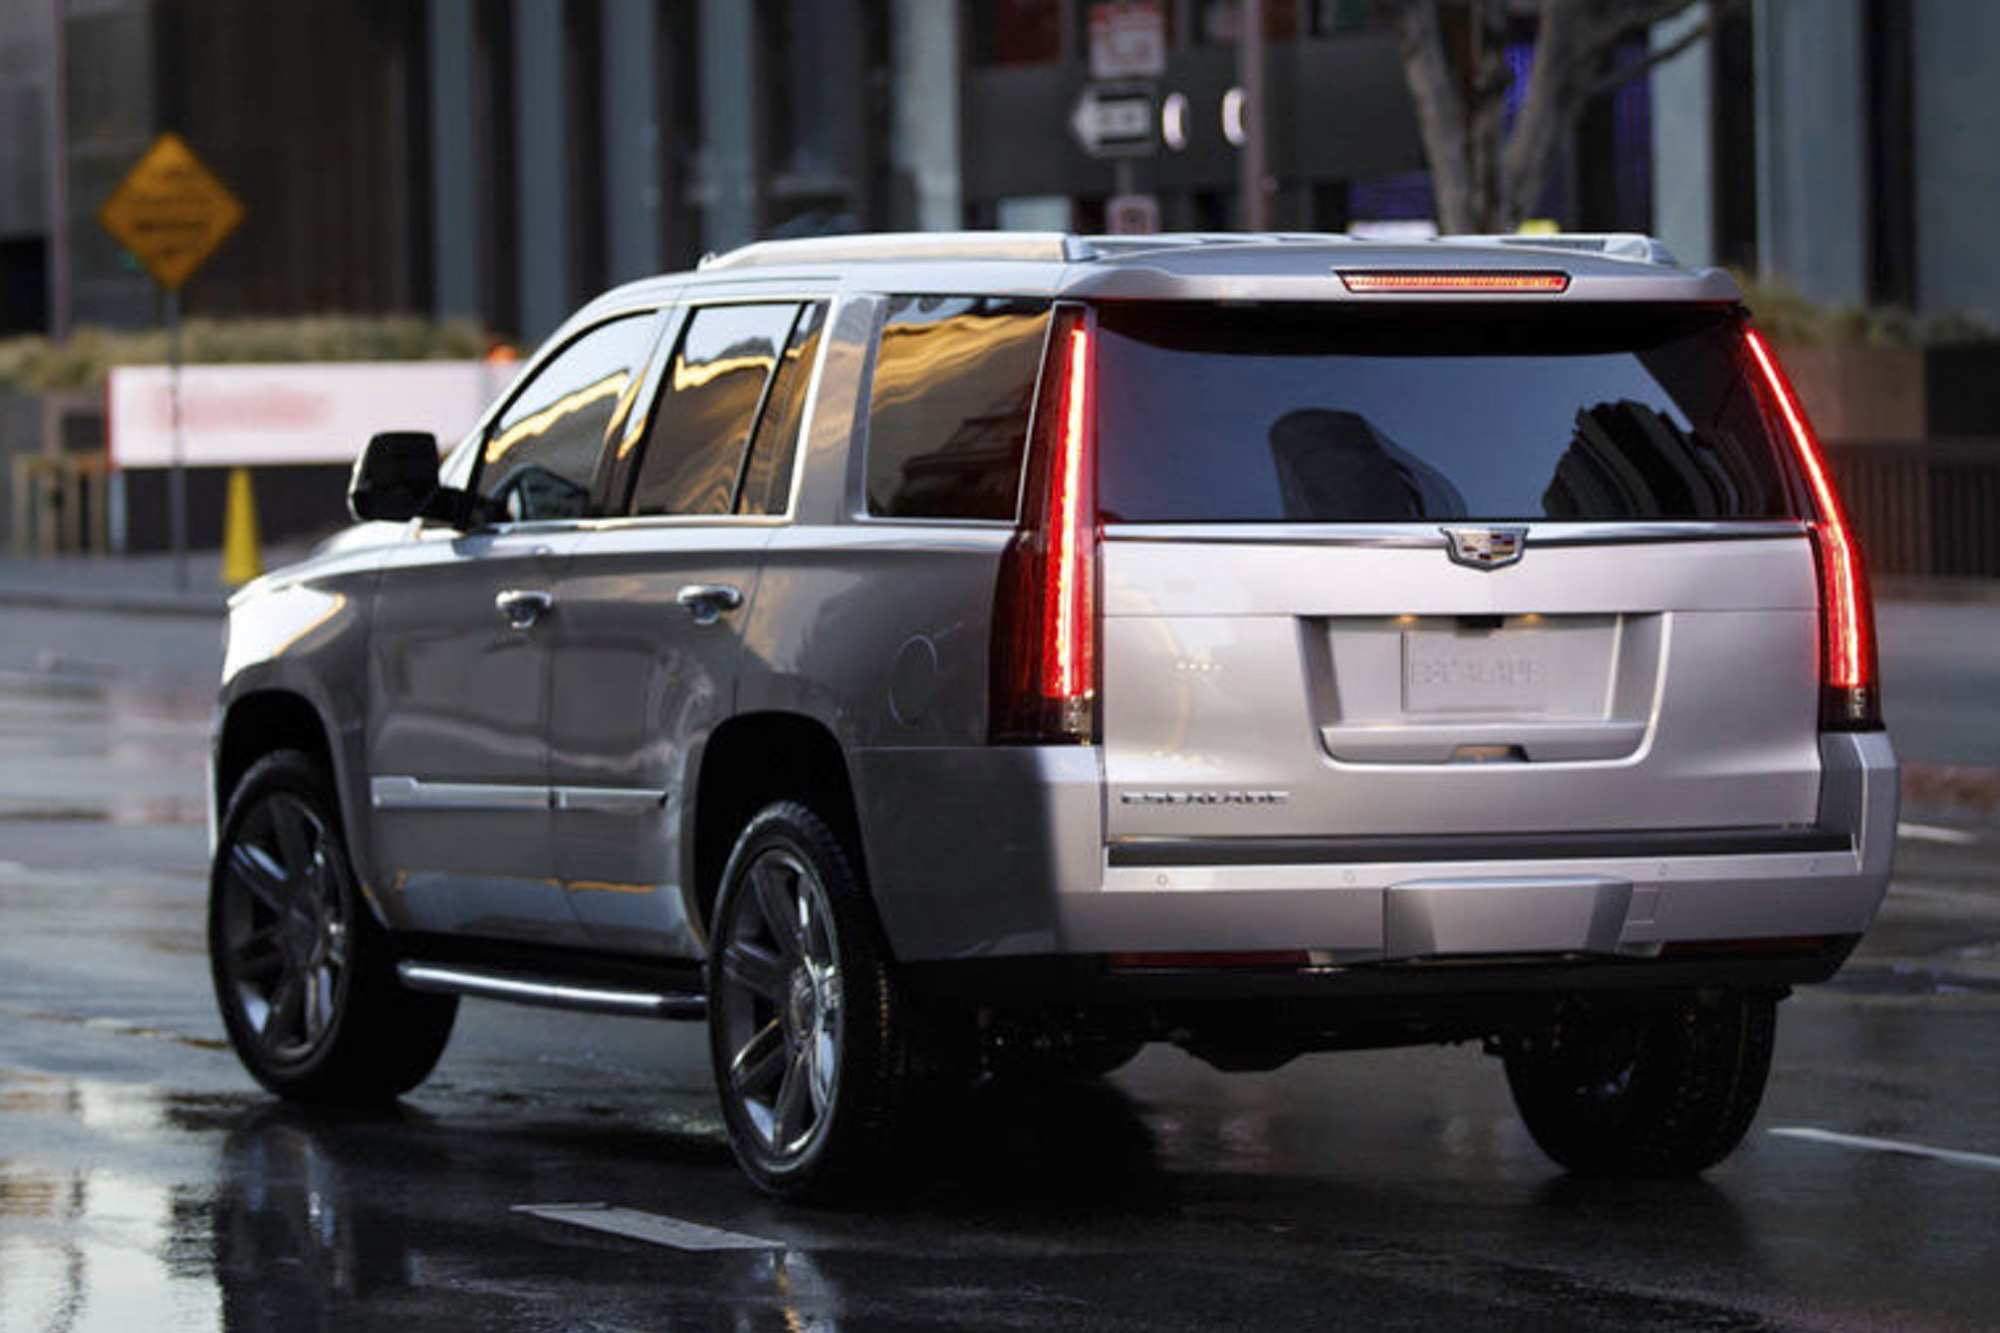 82 Gallery of 2020 Cadillac Escalade Msrp First Drive by 2020 Cadillac Escalade Msrp